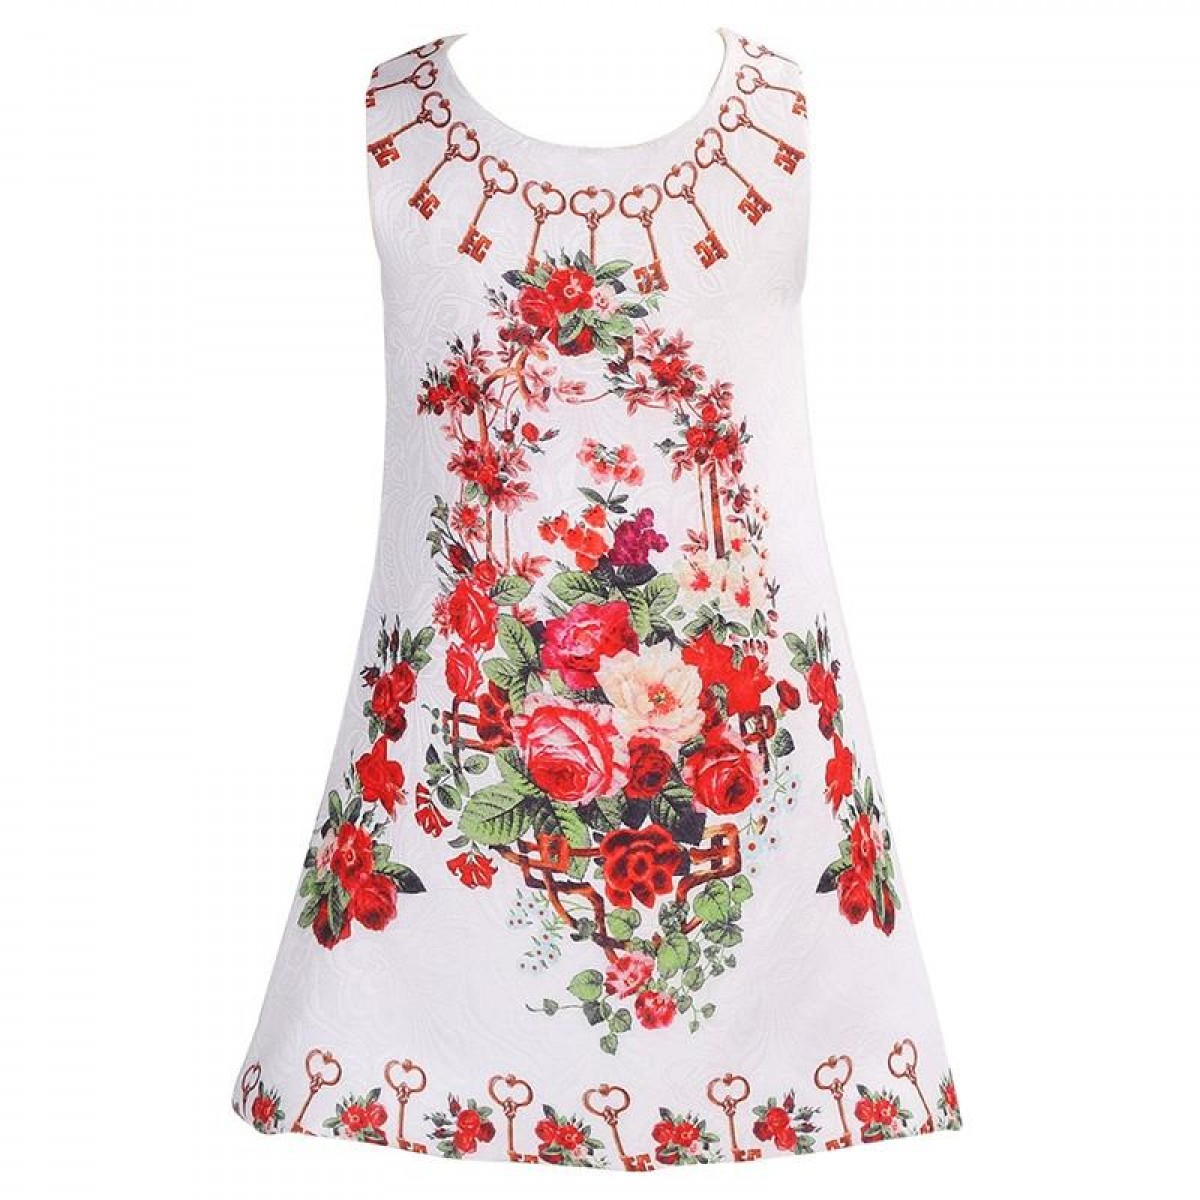 Stylish Dress White With Printed Flowers